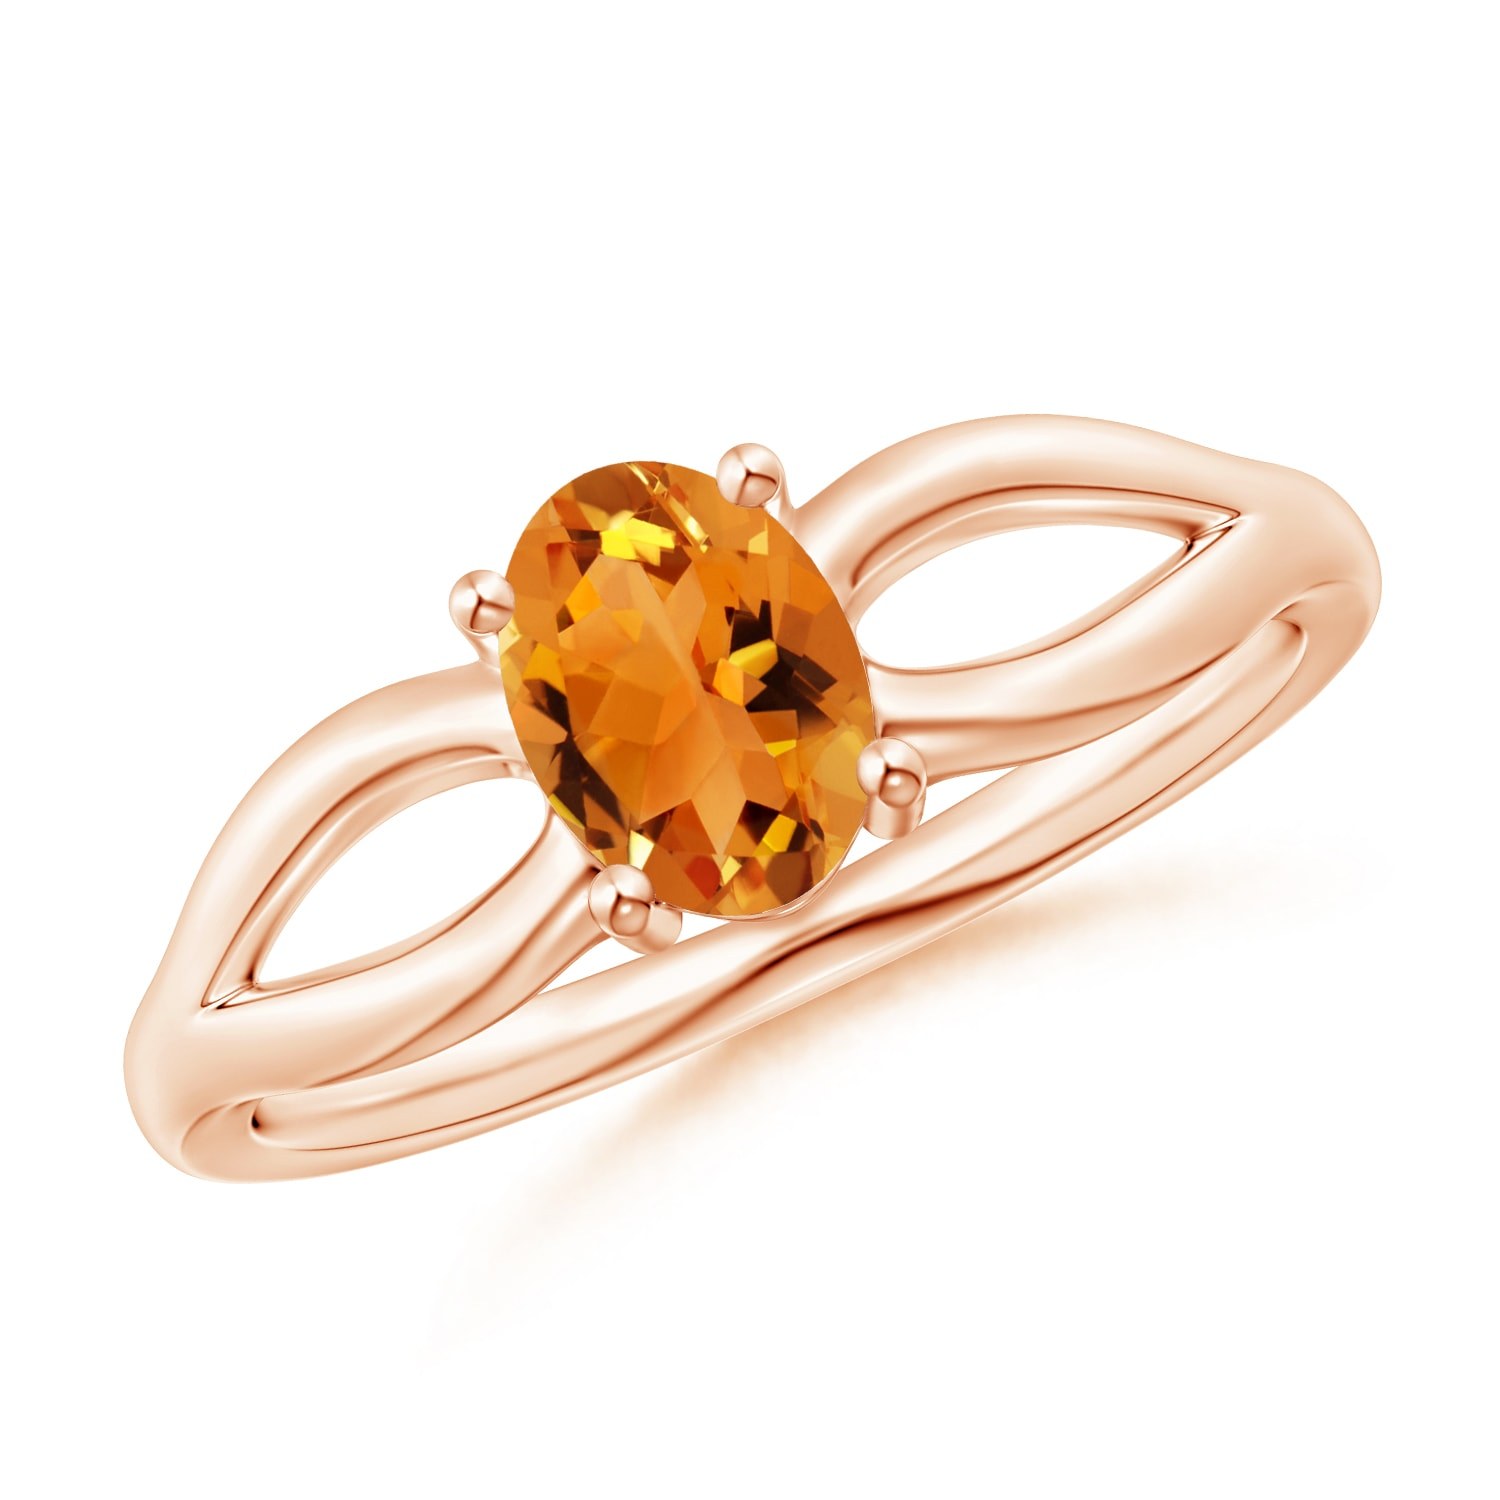 Angara Natural Citrine Ring in Yellow Gold 6DP8u